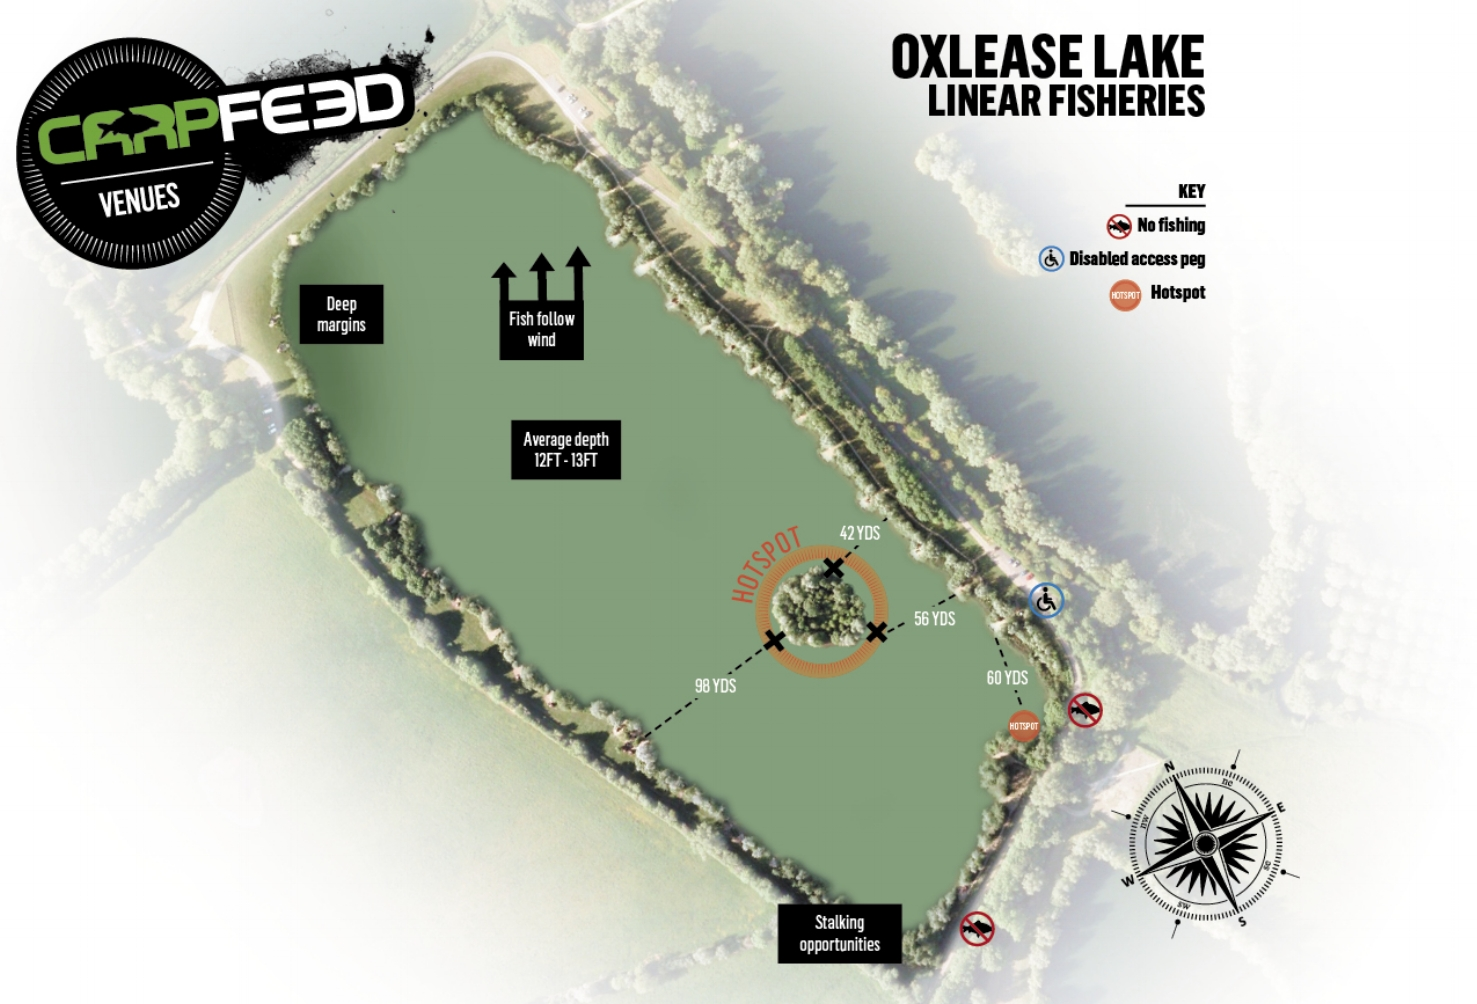 CLICK THE MAP FOR OUR GUIDE TO OXLEASE